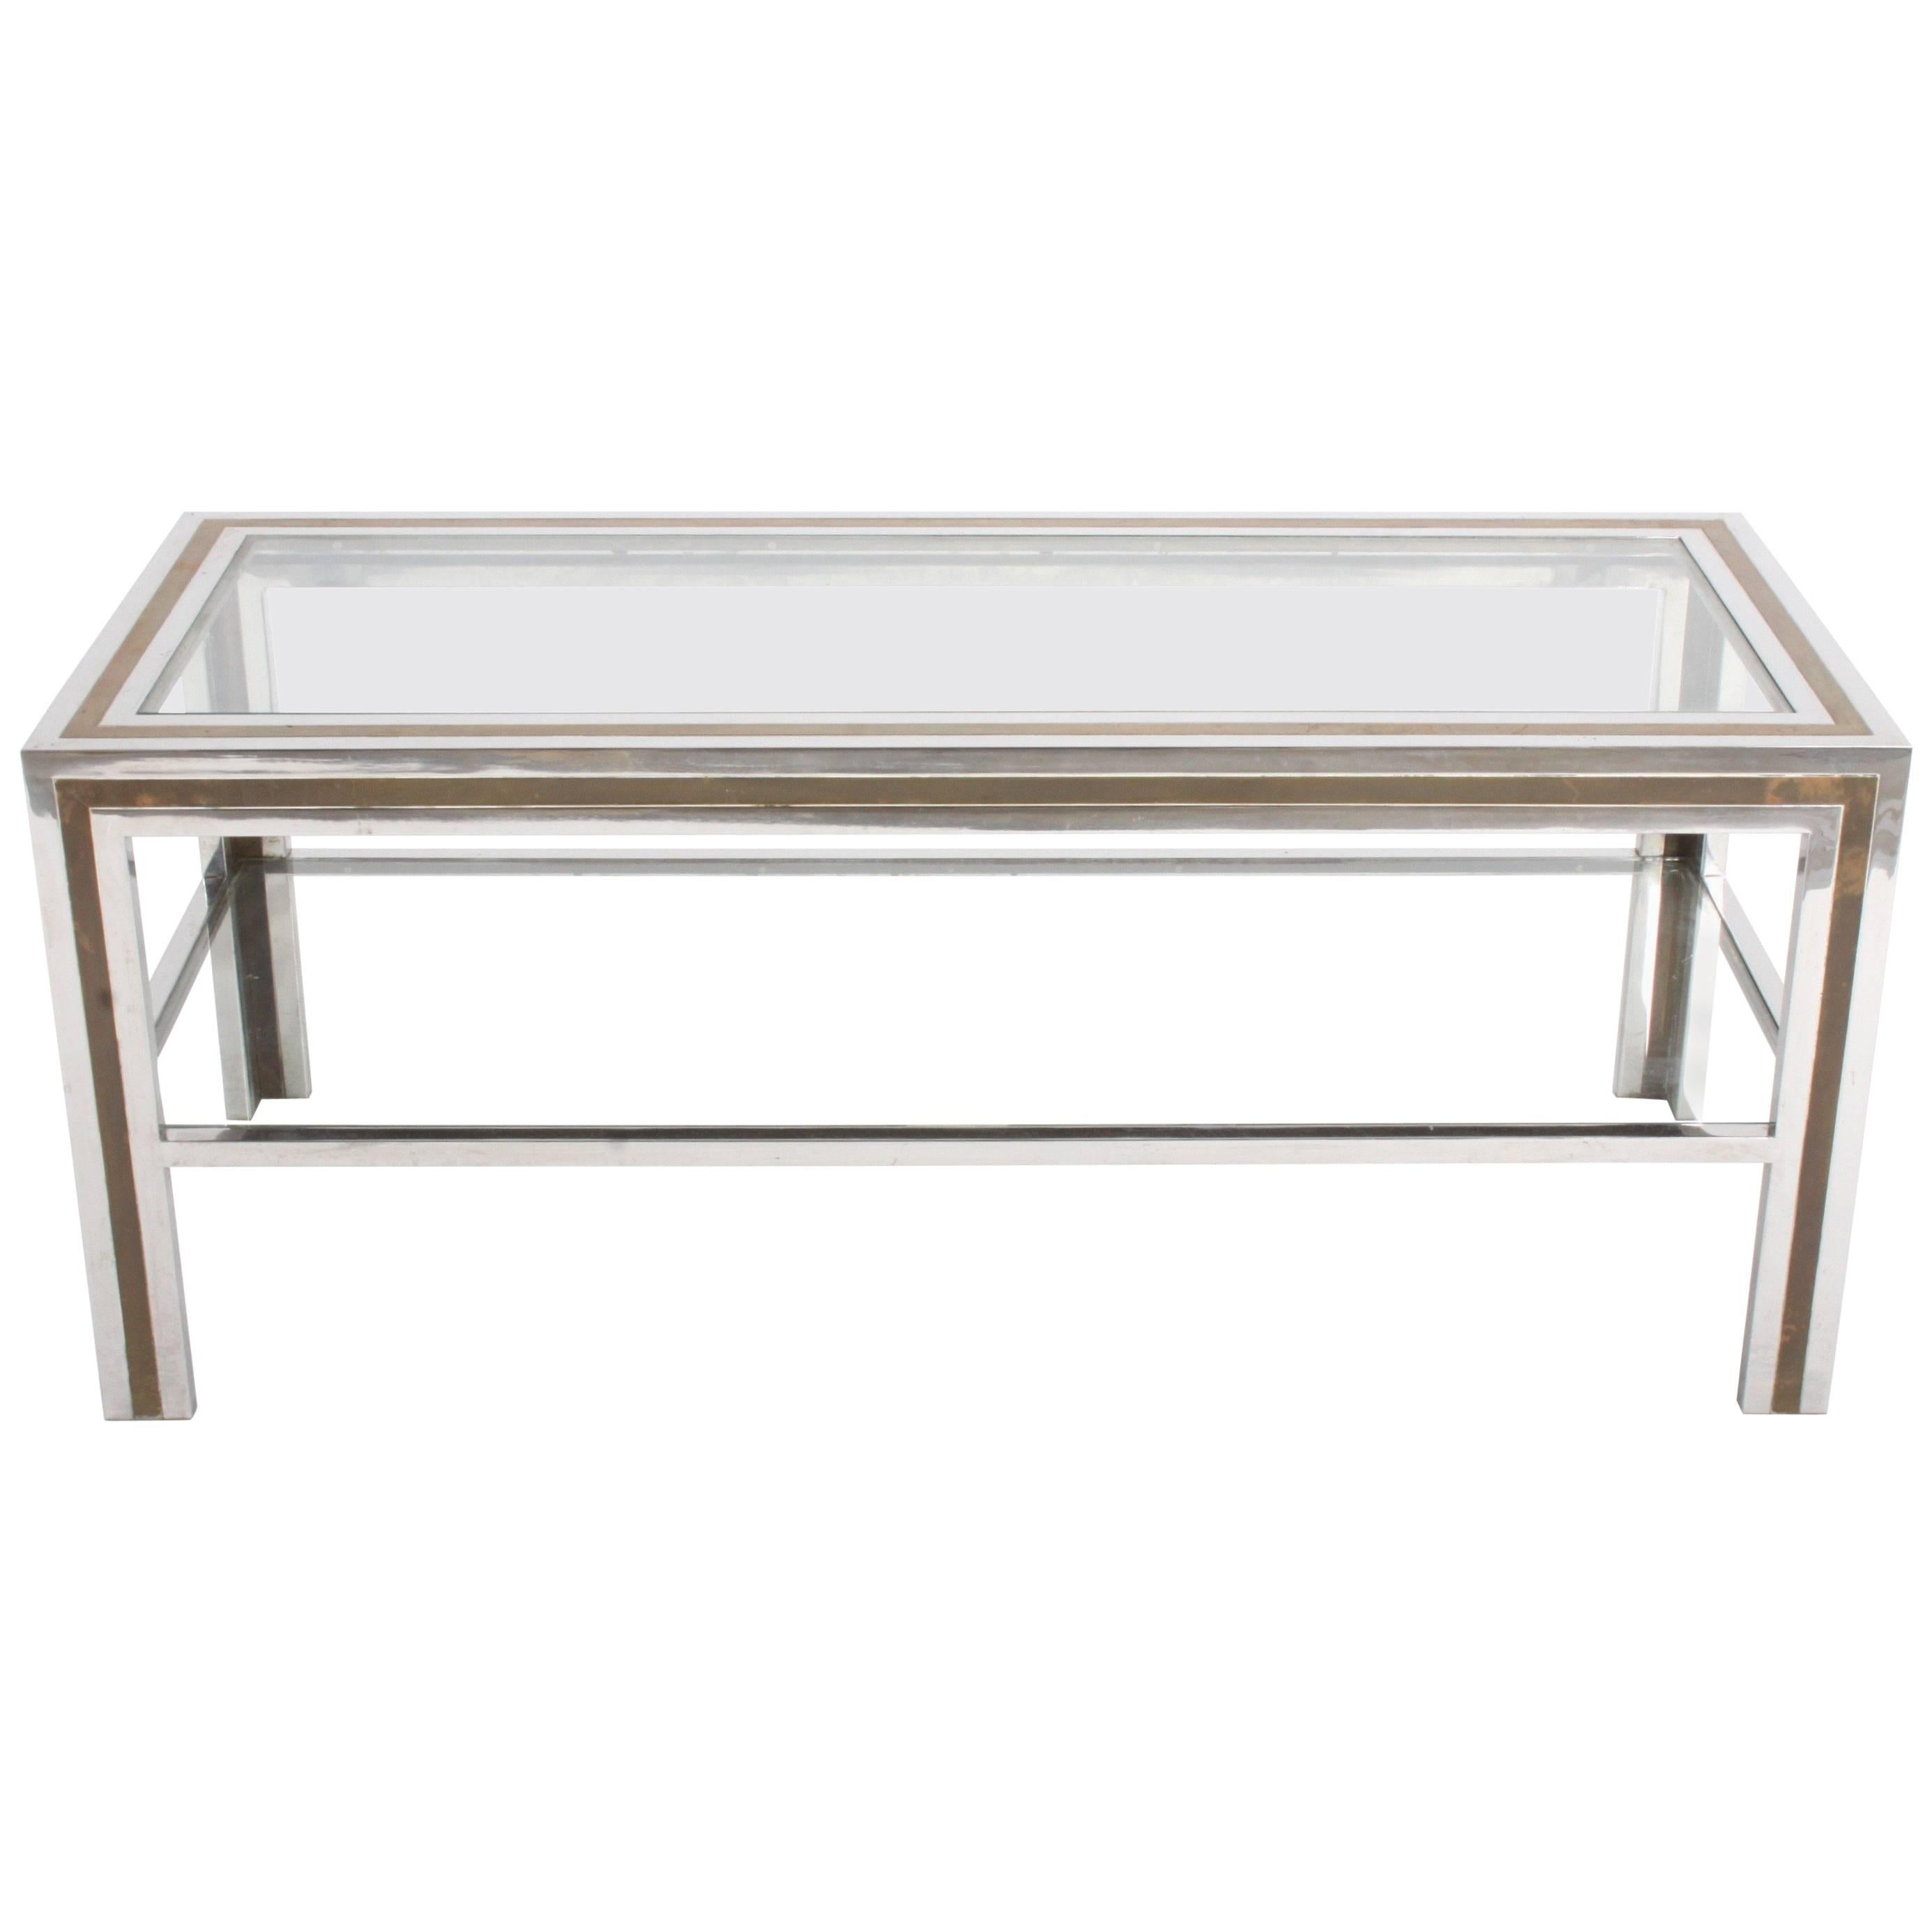 Romeo Rega Hollywood Regency Style 1970s Chrome and Brass Coffee Table